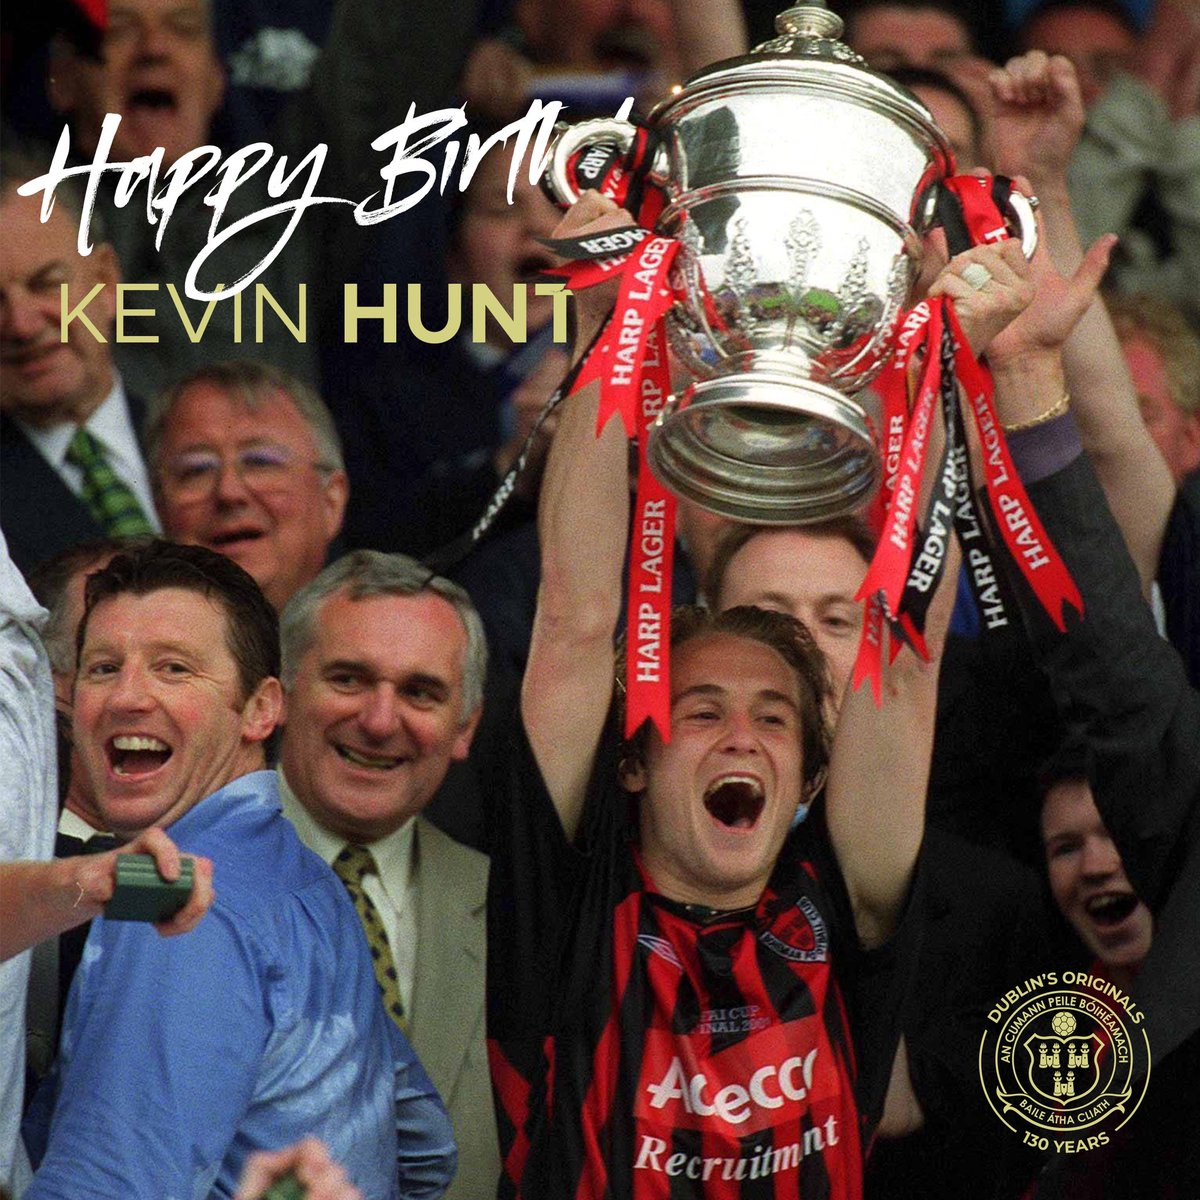 🎂🎉 Happy Birthday to the one and only Kevin Hunt! ⠀⠀⠀⠀⠀⠀⠀⠀ 🔴⚫️ #WeAreBohs #DublinsOriginals